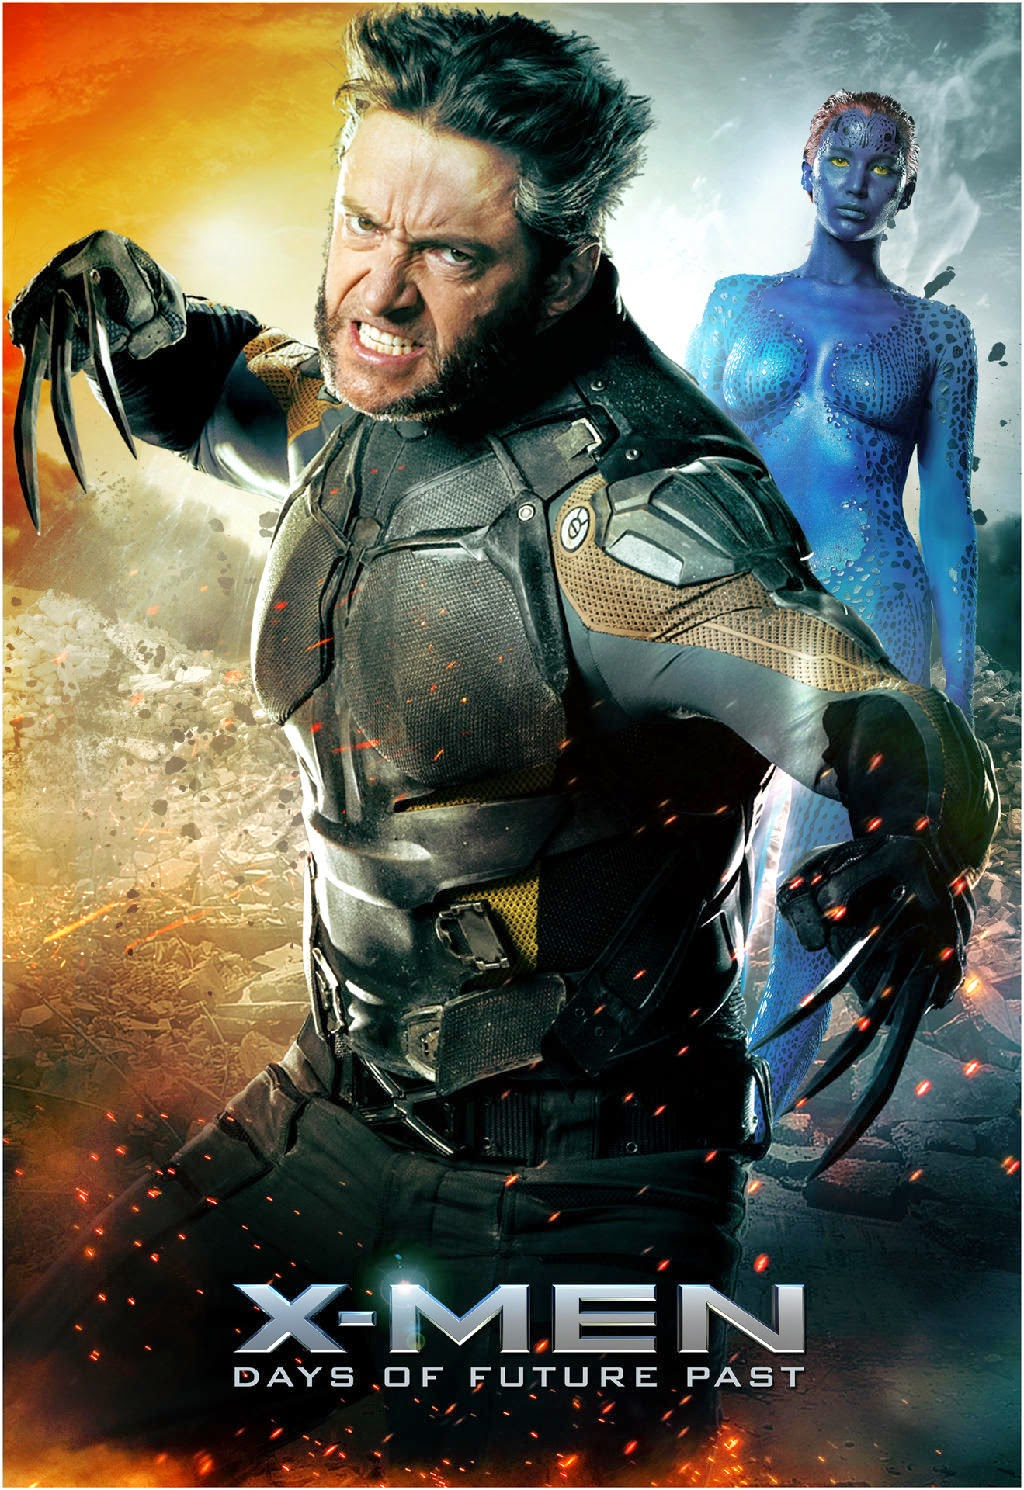 x men days of future past 2014 full movie free dowmload free download movie. Black Bedroom Furniture Sets. Home Design Ideas